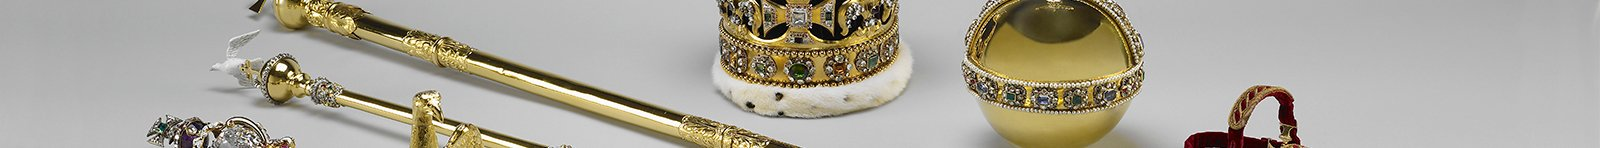 Assorted regalia from the Crown Jewels